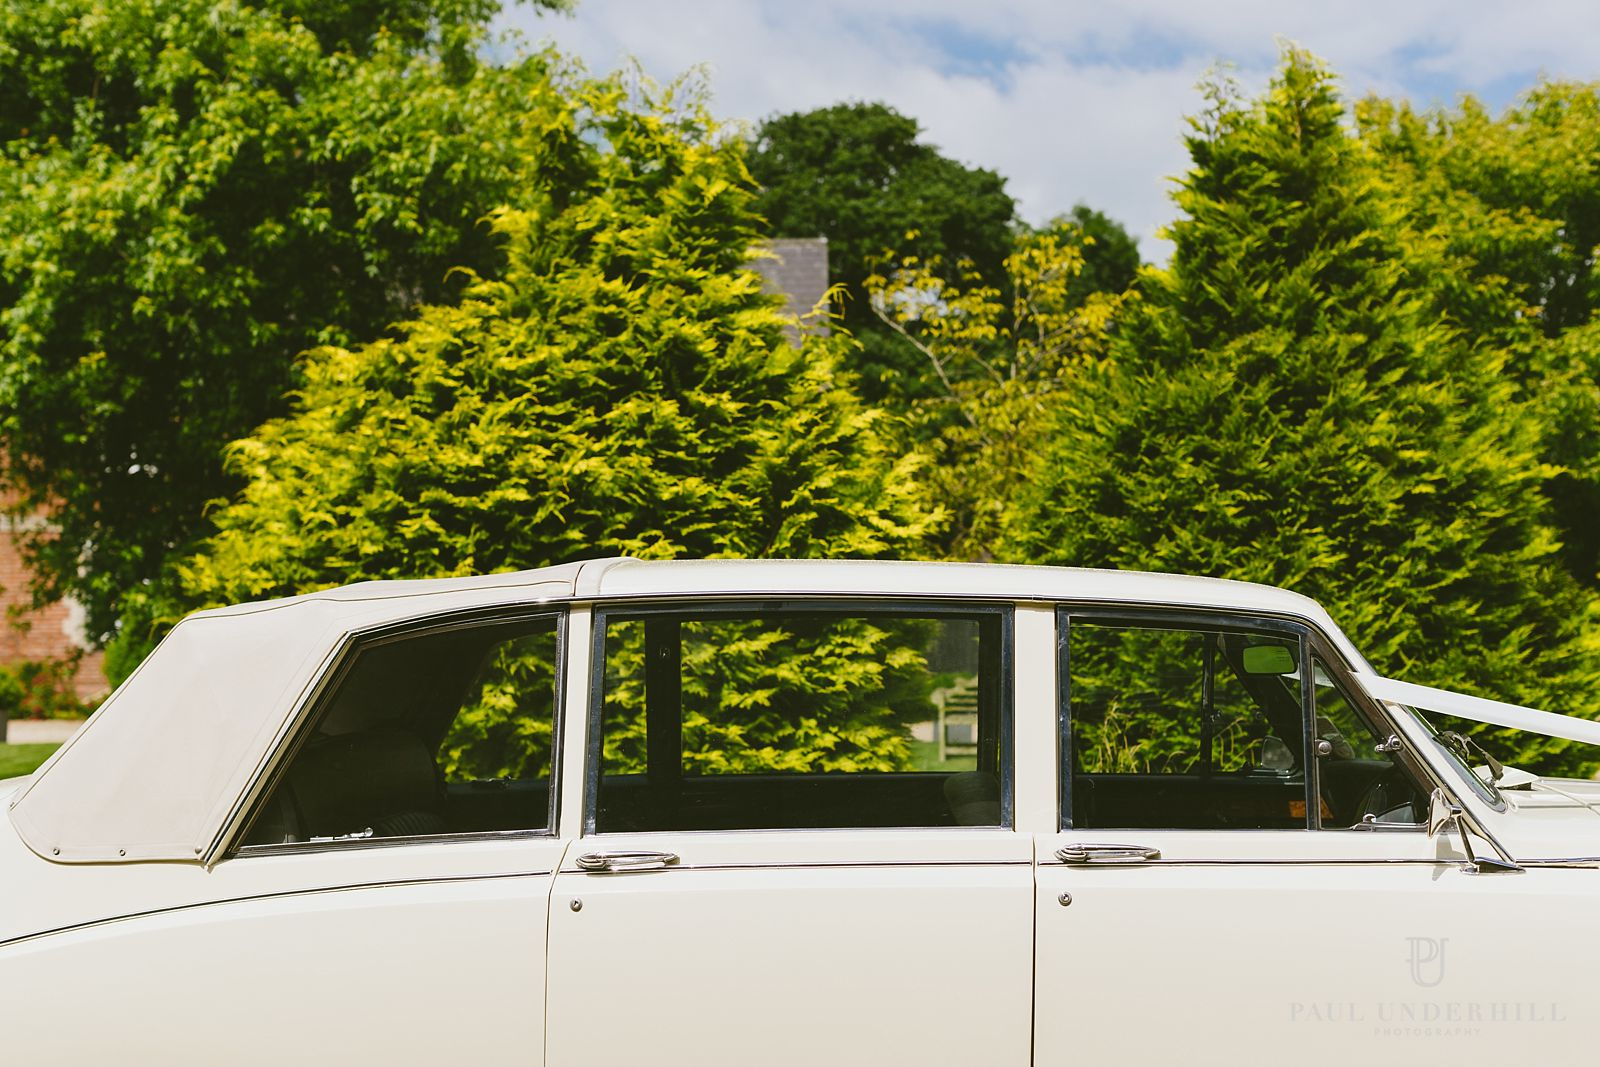 Bridal wedding car in Dorset